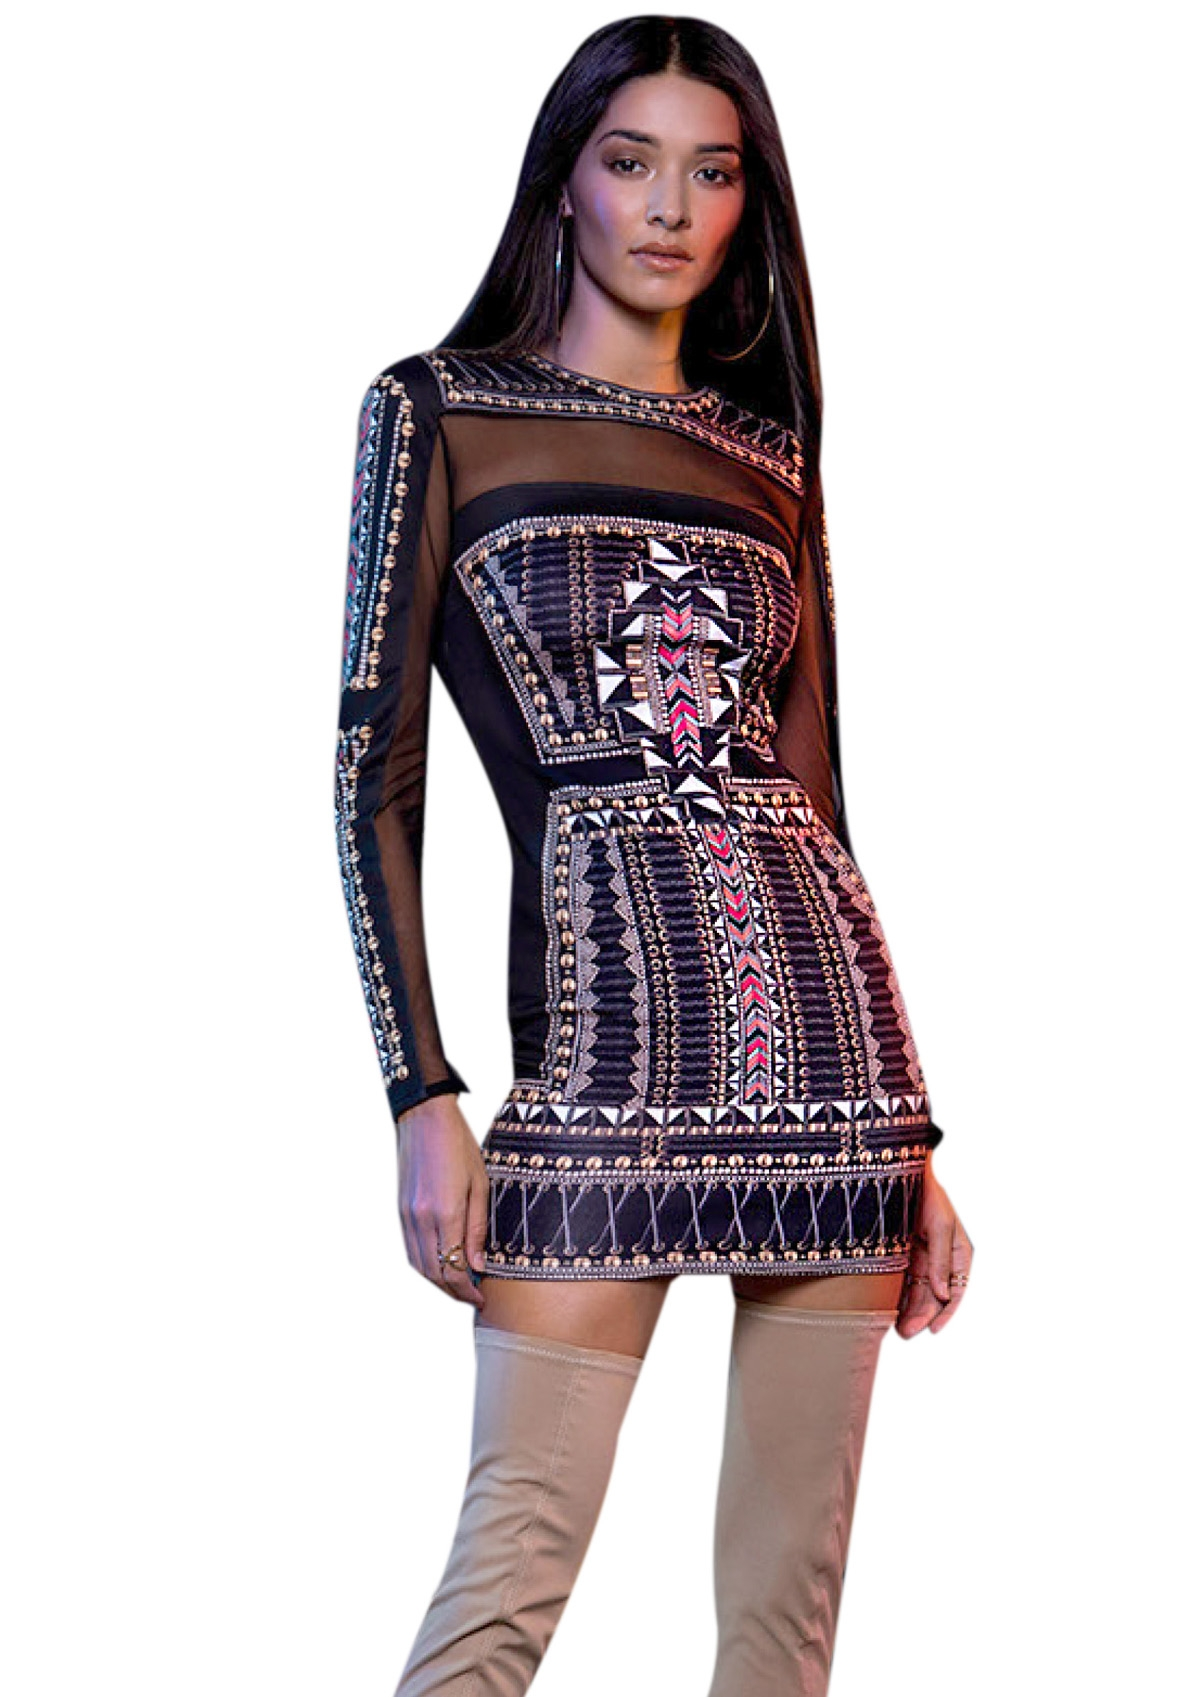 PEACE AND CHAOS GOLD MESH DRESS - Abebablom Store ce2d291b08f